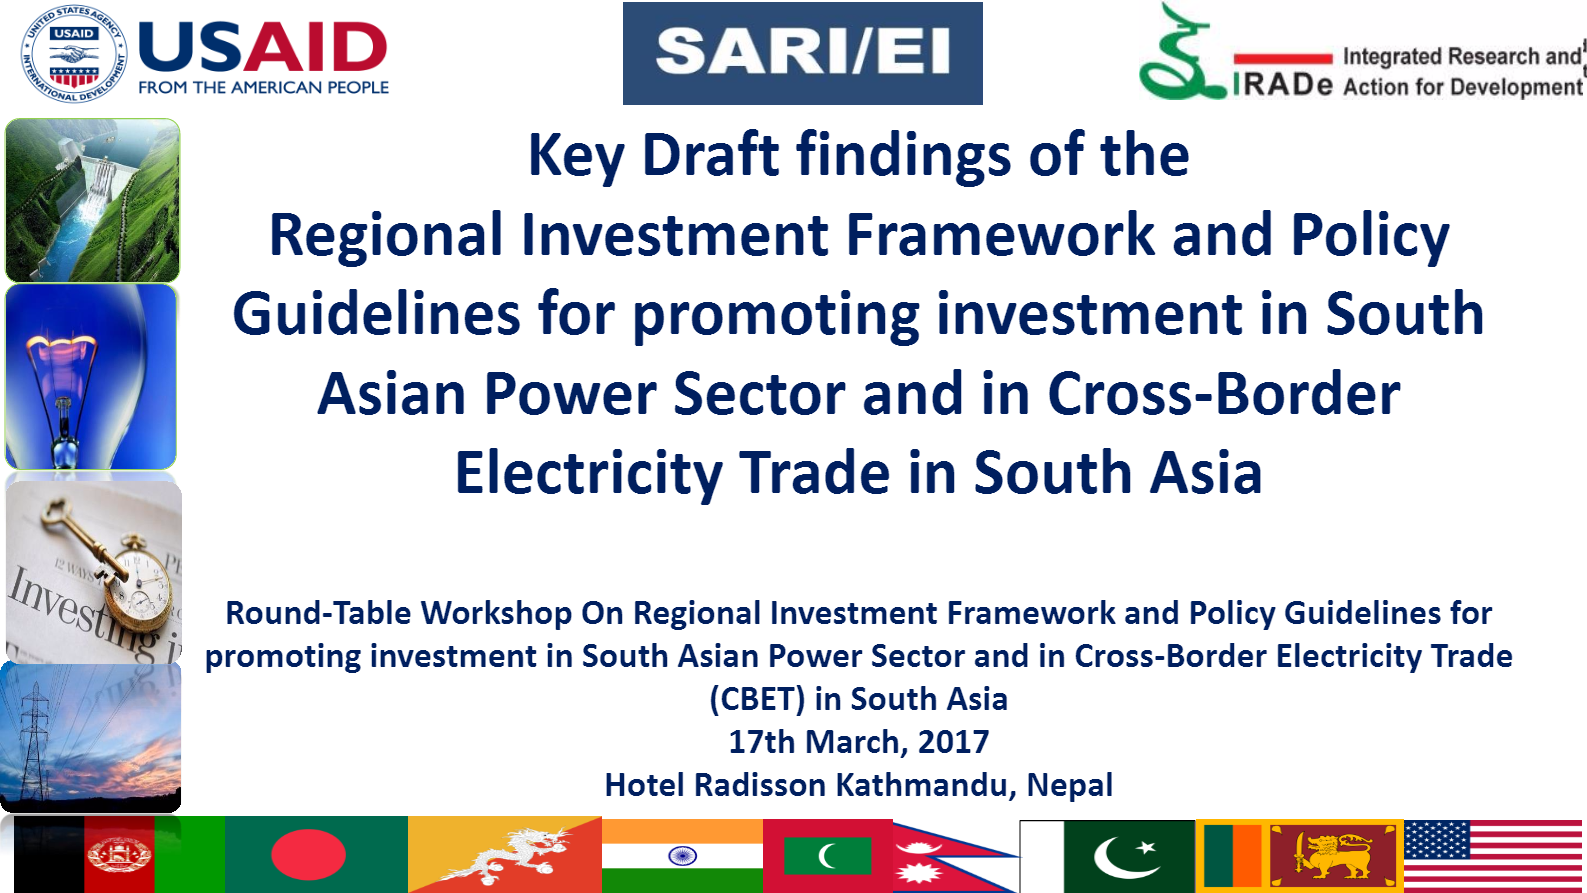 Key-Draft-findings-of-the-Regional-Investment-Framework-and-Policy-Guidelines-for-promoting-investment-in-South-Asian-Power-Sector-and-in-Cross-Border-Electricity